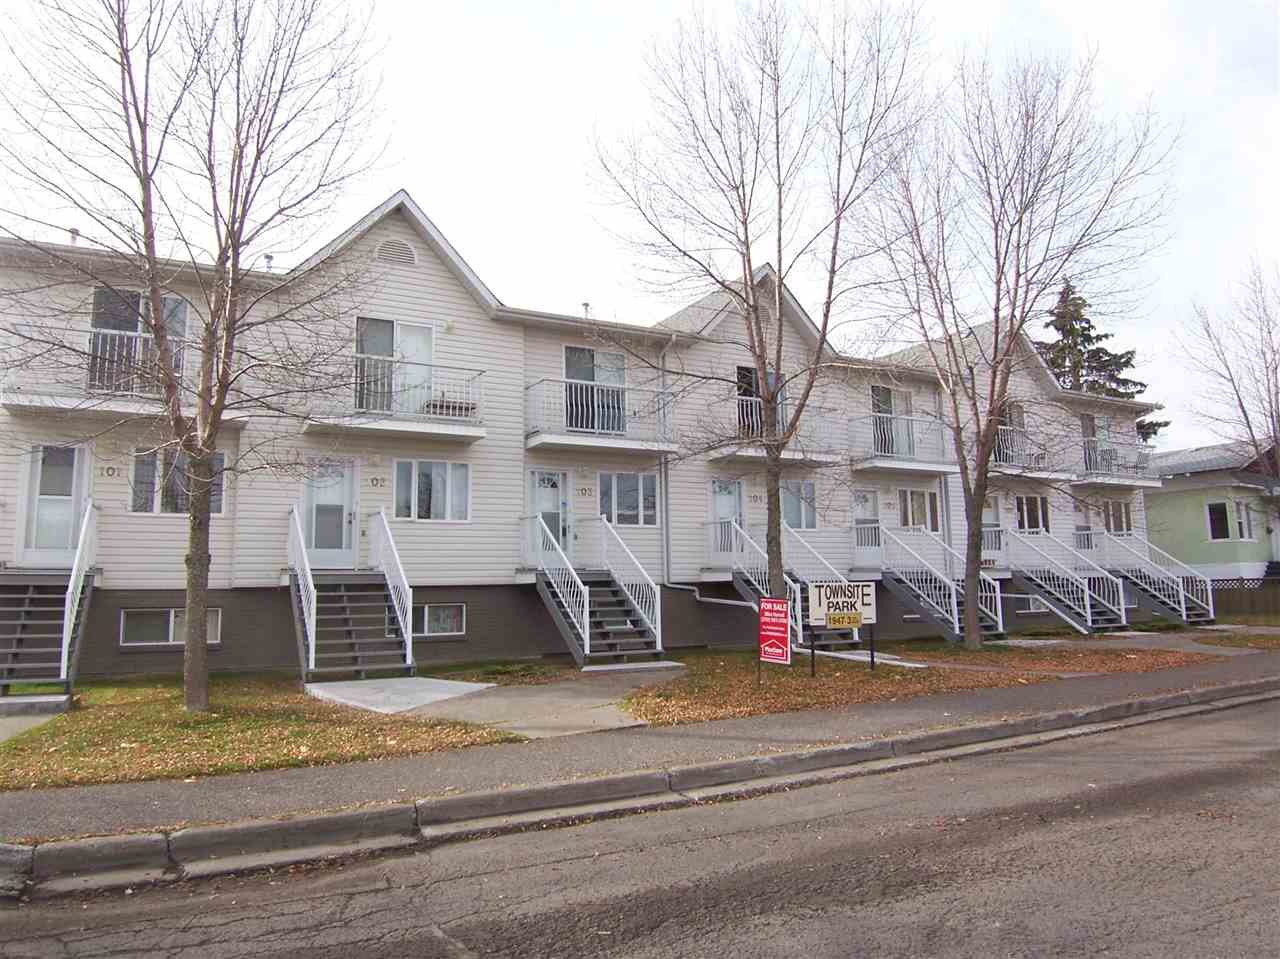 """Main Photo: 103 1947 3RD Avenue in PRINCE GRG: Crescents Townhouse for sale in """"TOWNSITE PARK"""" (PG City Central (Zone 72))  : MLS®# R2006146"""